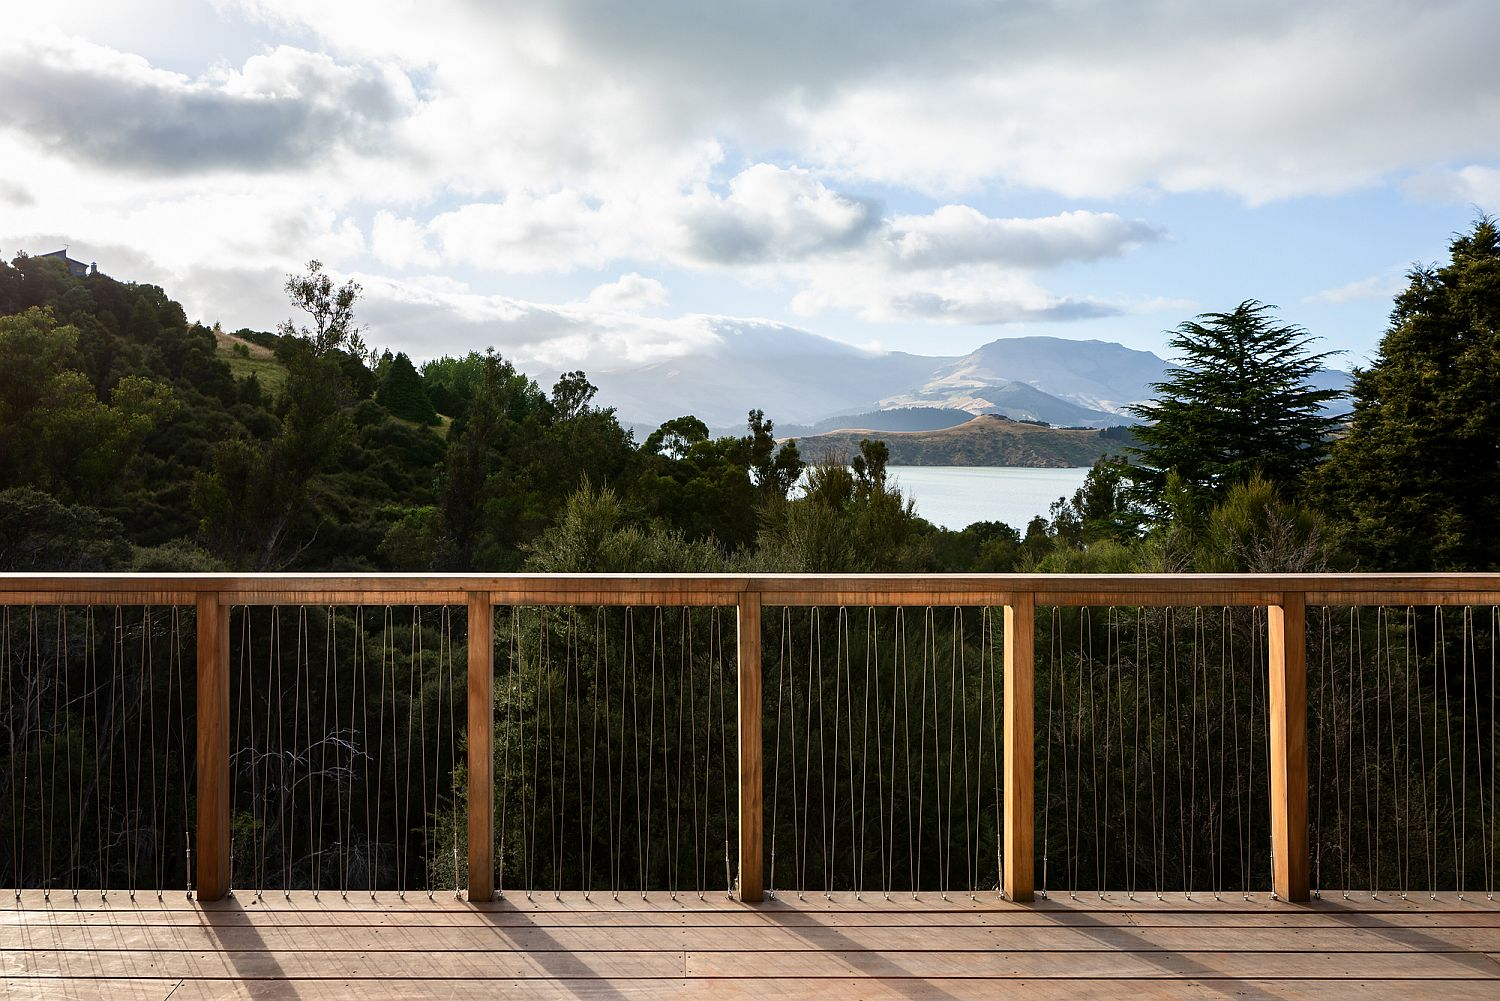 Look outside at the Lyttelton Harbour from the deck of the house